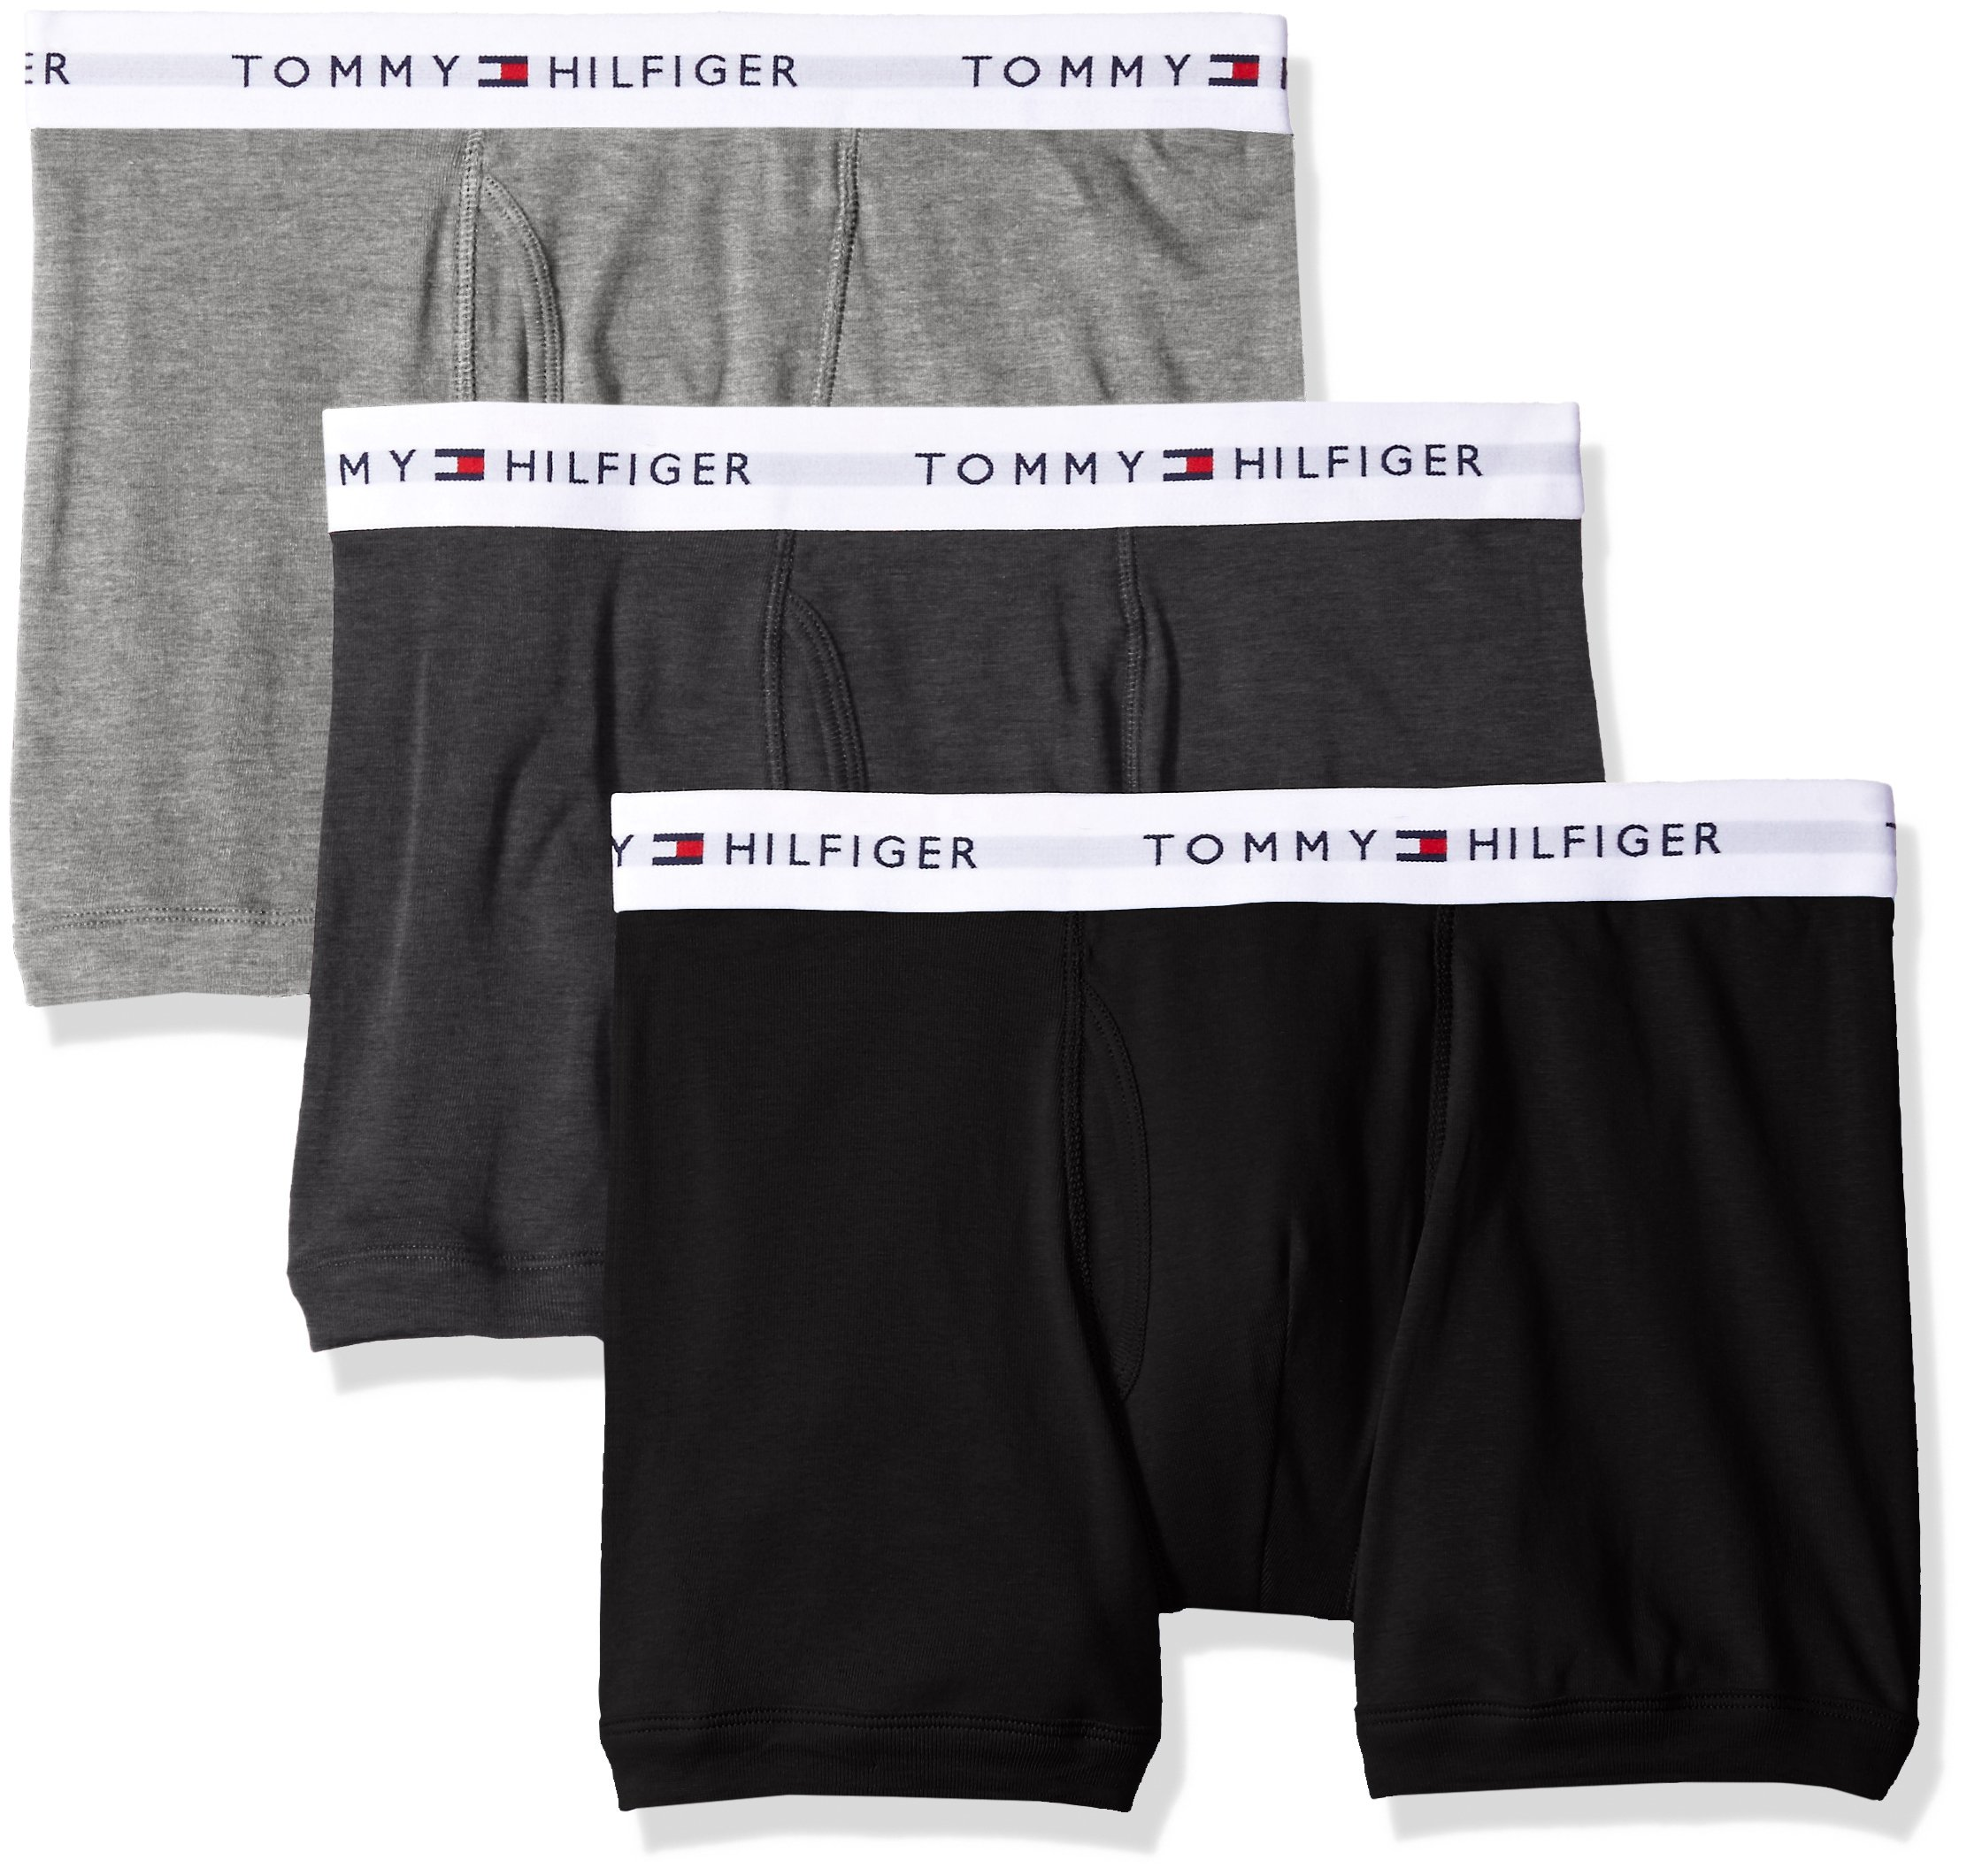 Tommy Hilfiger Men's Underwear 3 Pack Cotton Classics Trunks, Grey Heather, Small by Tommy Hilfiger